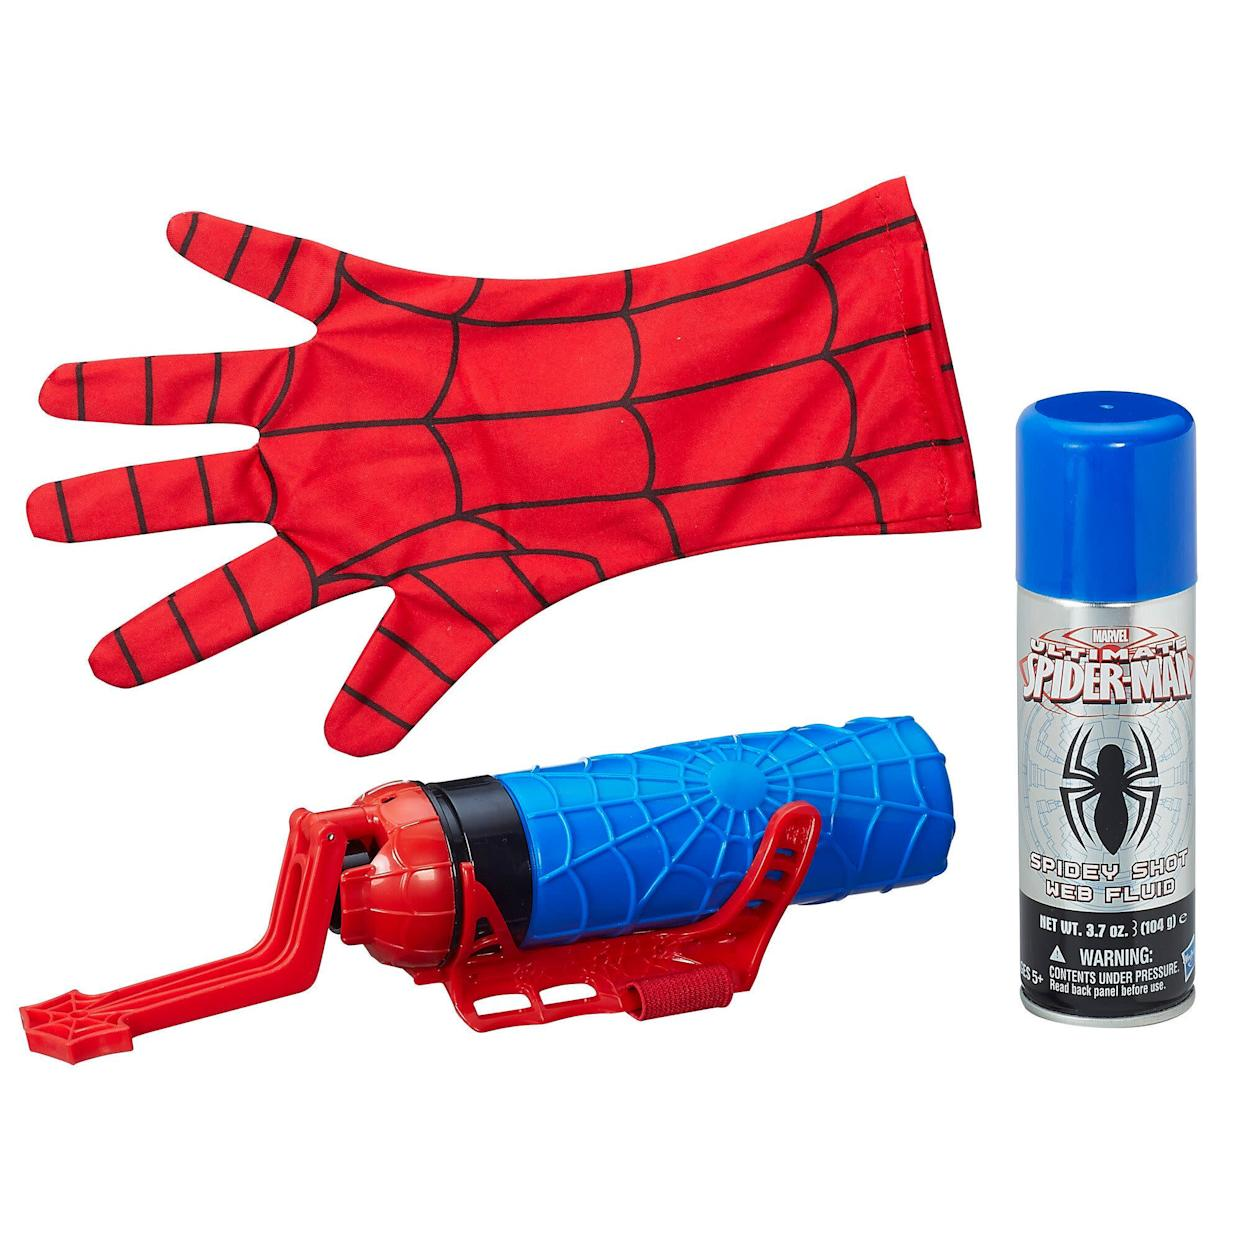 "With the Spider-Man Super Web Slinger, kids are ready to sling webs like Spider-Man! Load the included can of Spidey Shot web fluid and get ready for some web-blasting action! Kids will discover that web-slinging is not just a great way to imagine fighting crime; it's also a great way to have fun! With the Spider-Man Super Web Slinger, it's time to blast bad guys or just have a blast with Spider-Man gear! <strong><a href=""https://fave.co/2HKjO7d"" rel=""nofollow noopener"" target=""_blank"" data-ylk=""slk:Find it for $18 at Walmart"" class=""link rapid-noclick-resp"">Find it for $18 at Walmart</a>.</strong>"